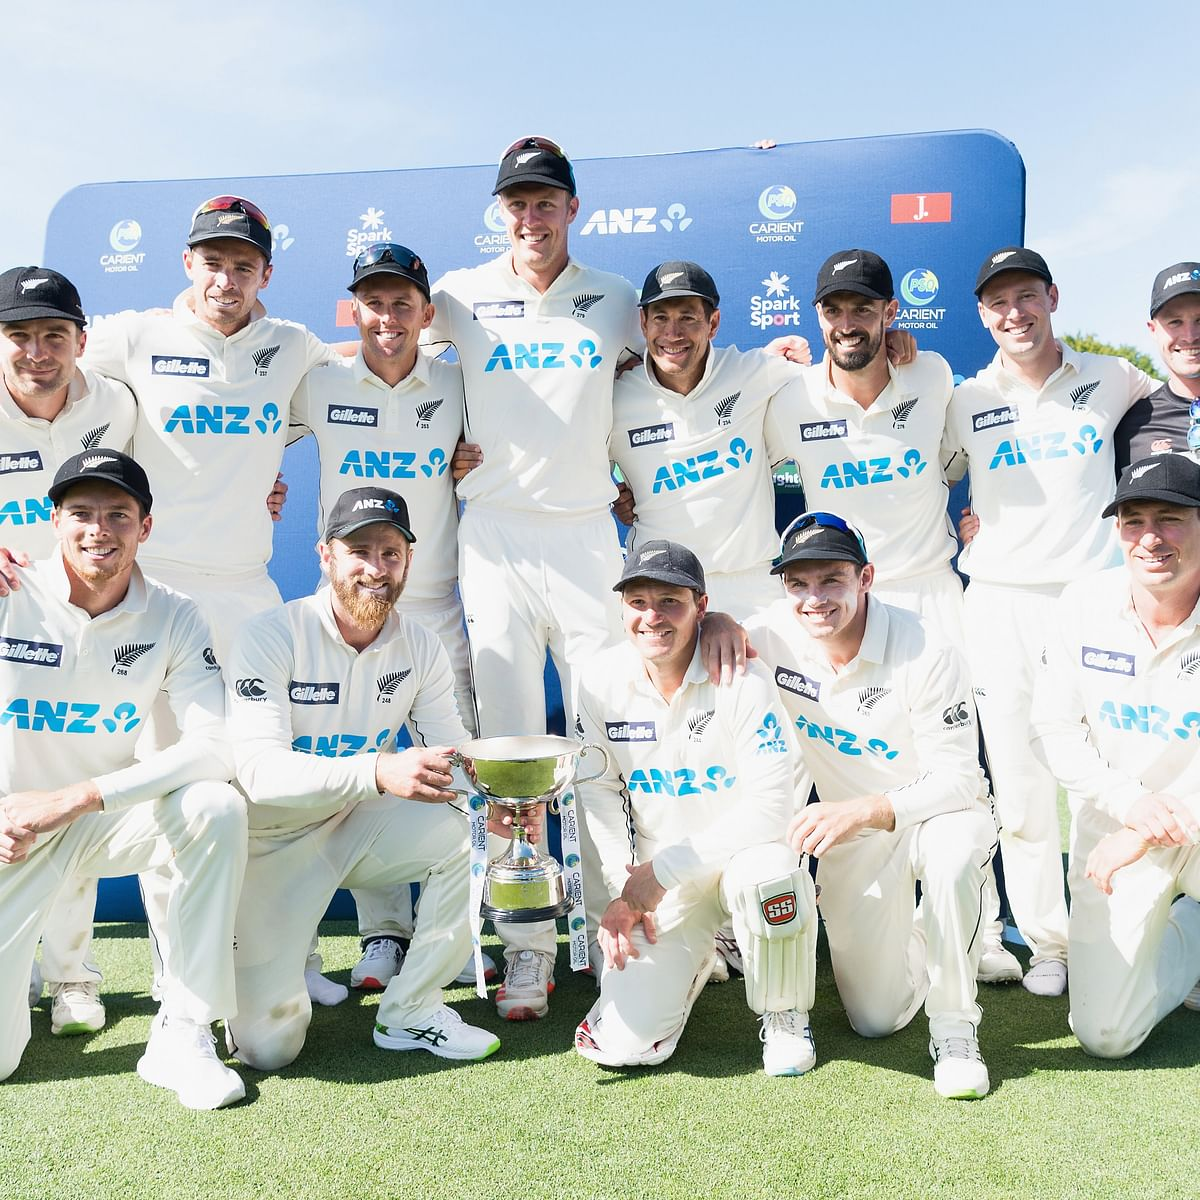 ICC rankings: New Zealand surpasses Australia to become No.1 Test team for first time in history